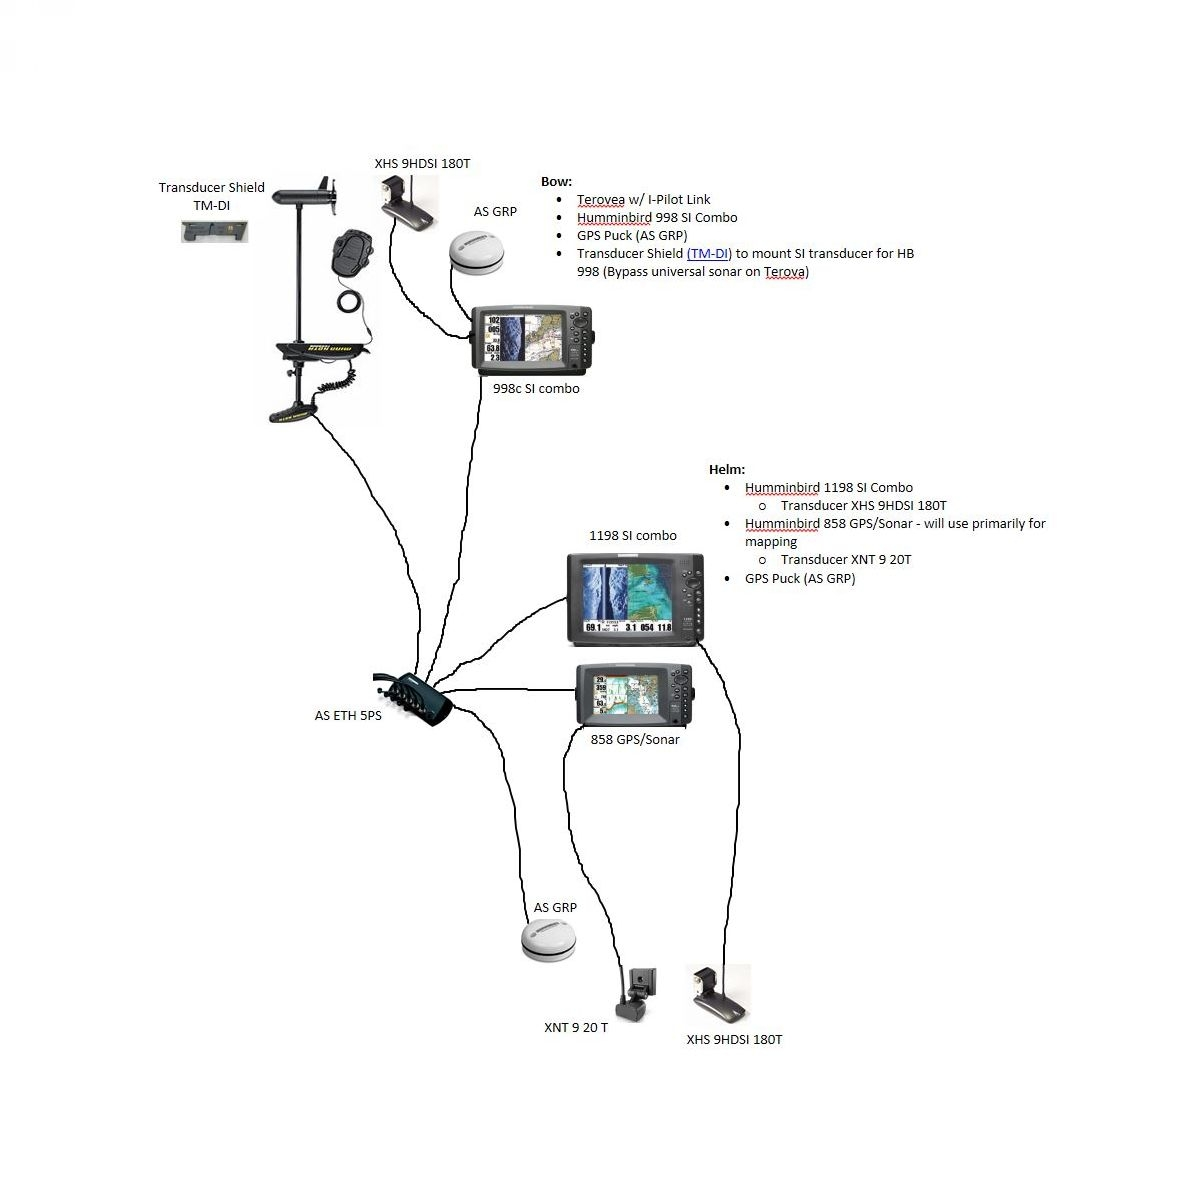 hight resolution of helix 5 ethernet wiring diagram wiring diagram explained motorguide wiring diagram humminbird ethernet wiring diagrams